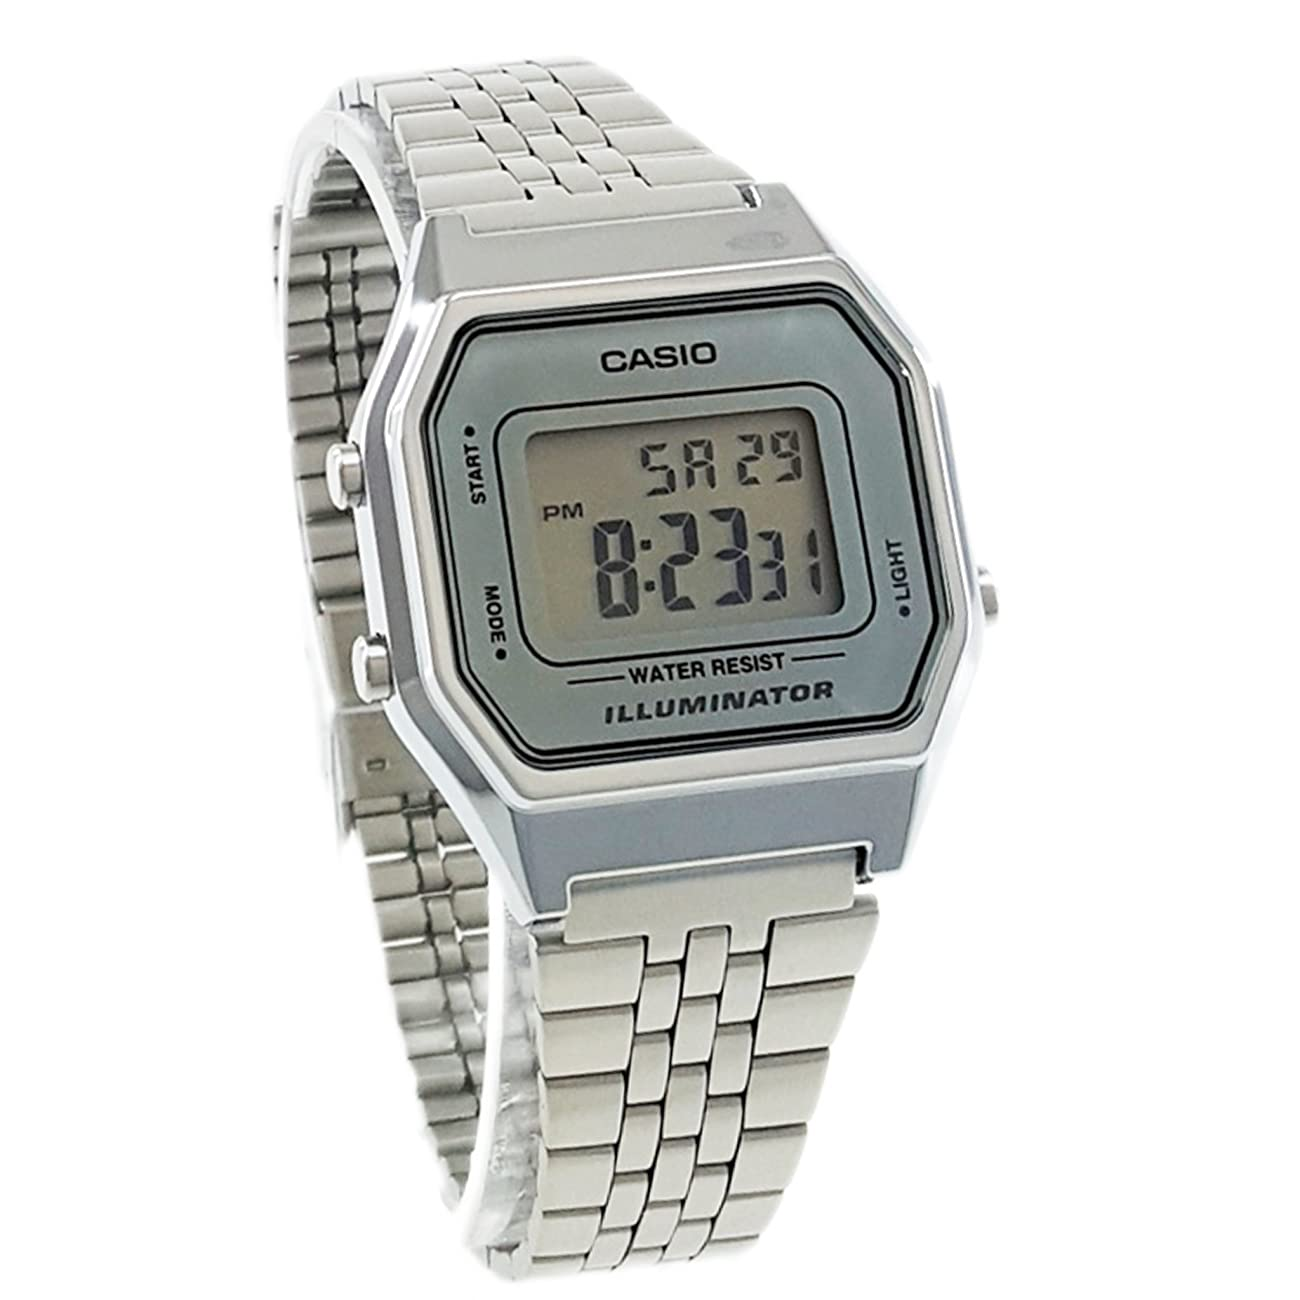 Casio Ladies Mid-Size Silver Tone Digital Retro Watch LA-680WA-7DF 1